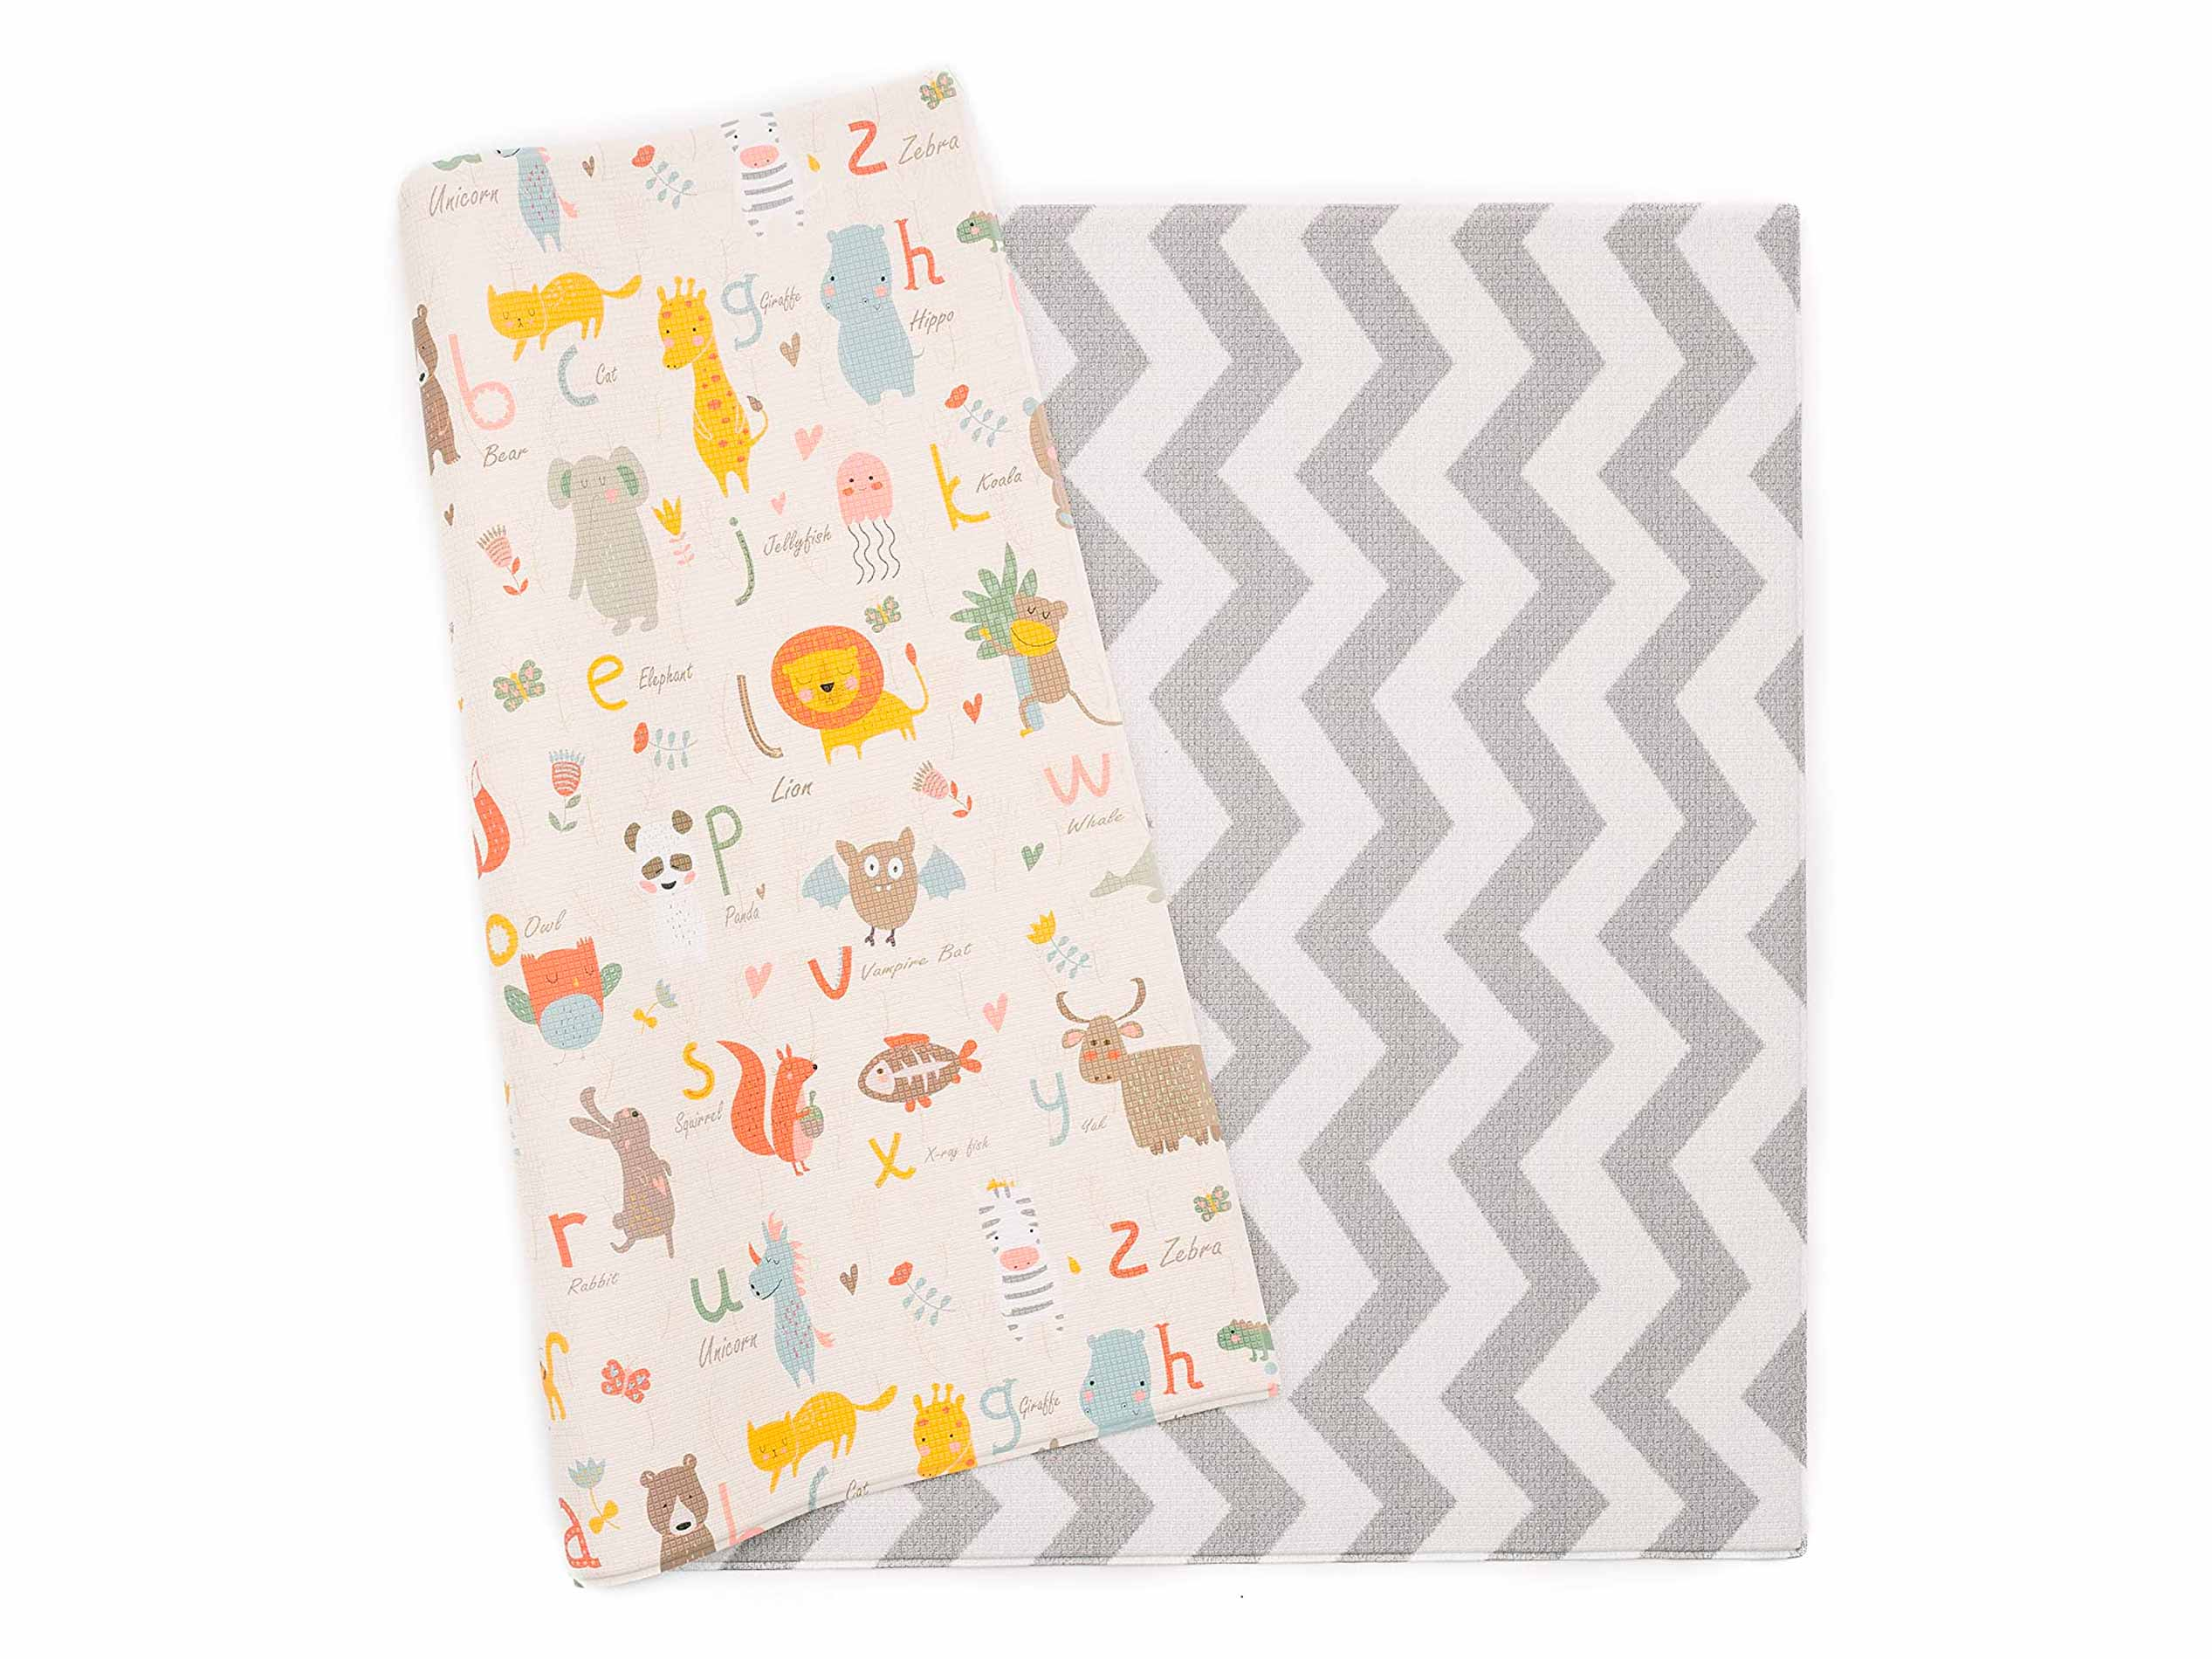 Baby Care Play Mat - Haute Collection (Large, Zig Zag - Grey) - Non-Toxic Foam Baby mats for Tummy time, Playing, and More